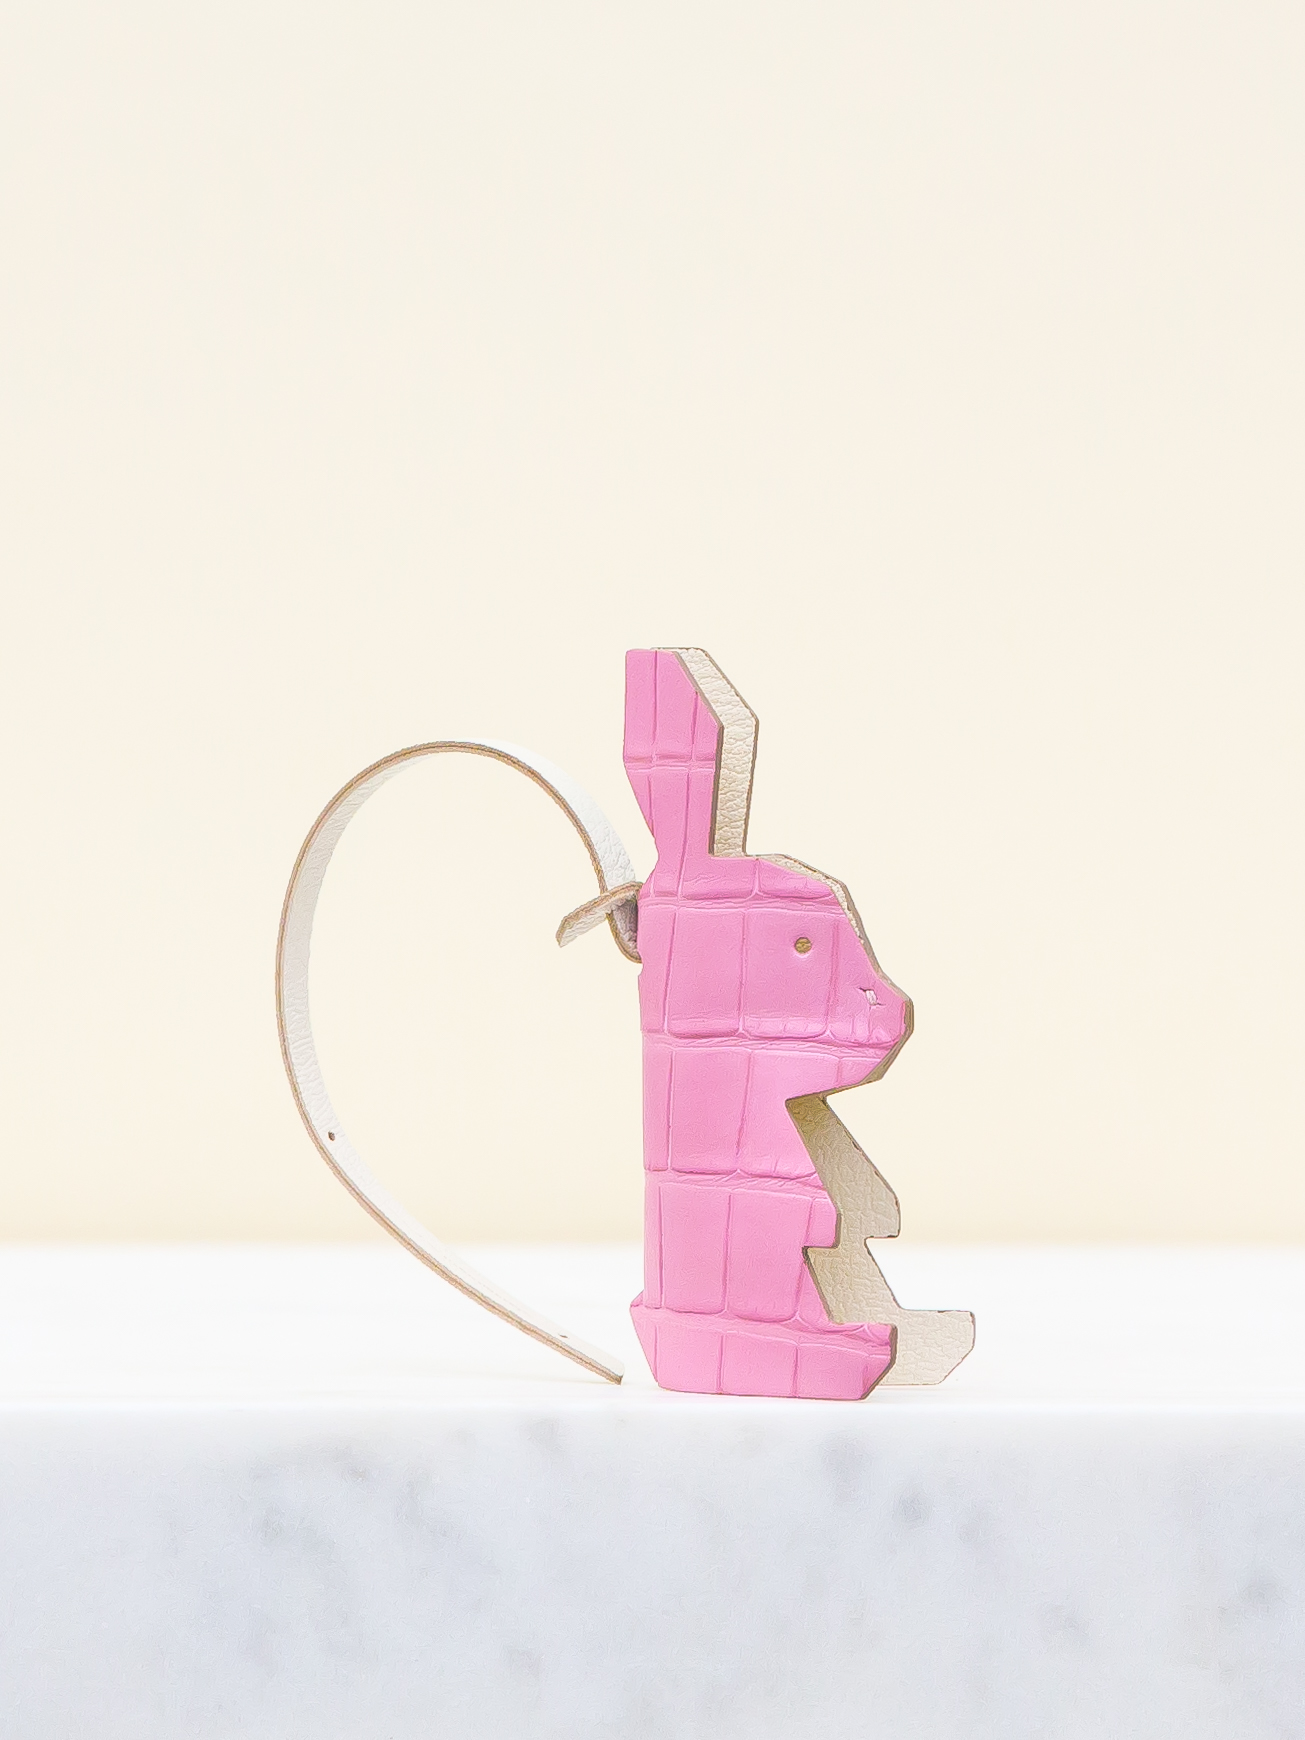 Chloe Bag Charm - Pink by Chance Mystère on curated-crowd.com